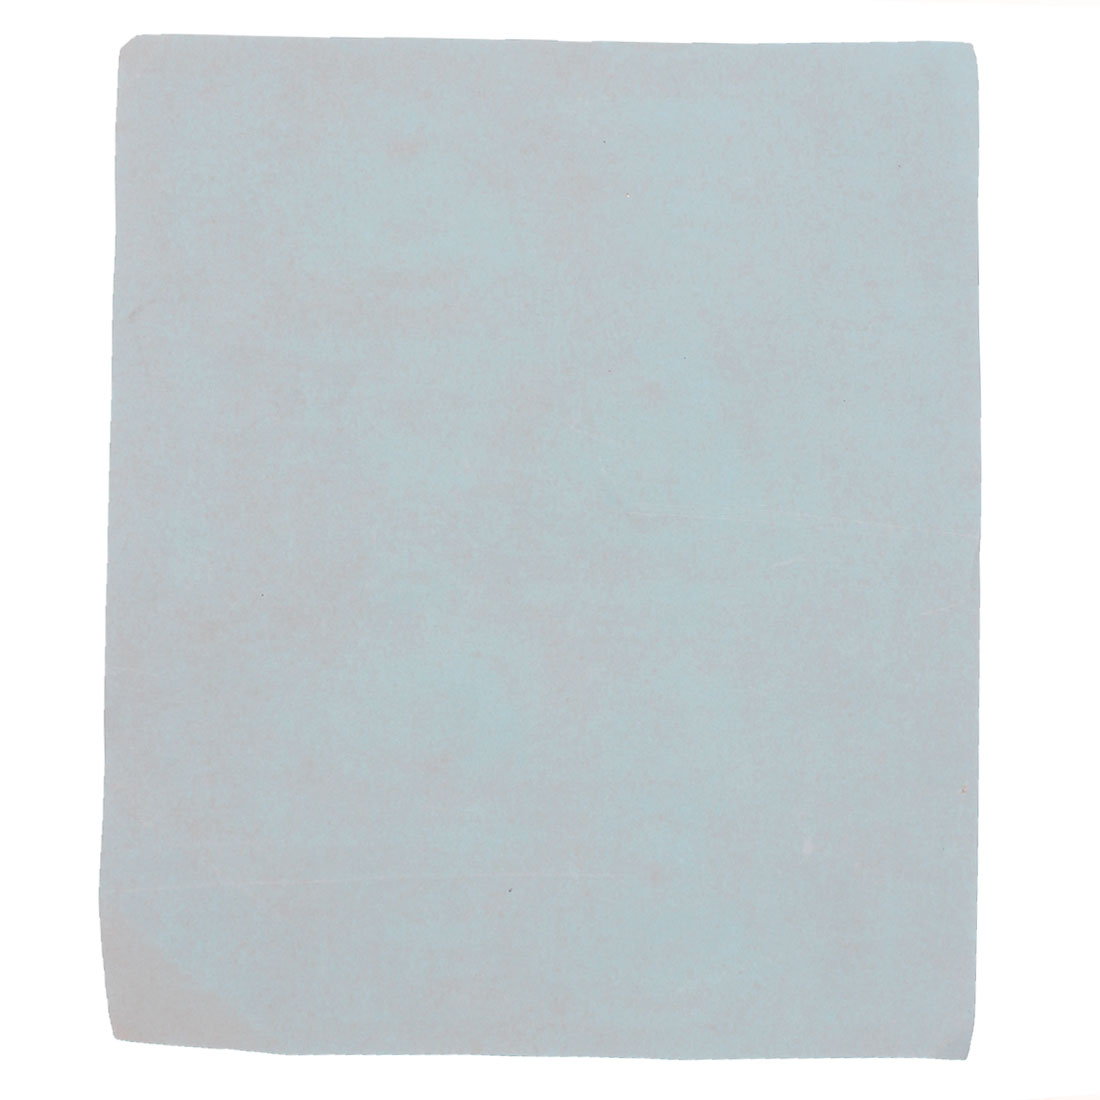 Finishing Sanding Paint Varnish Abrasive Paper Silicon Carbide P2500